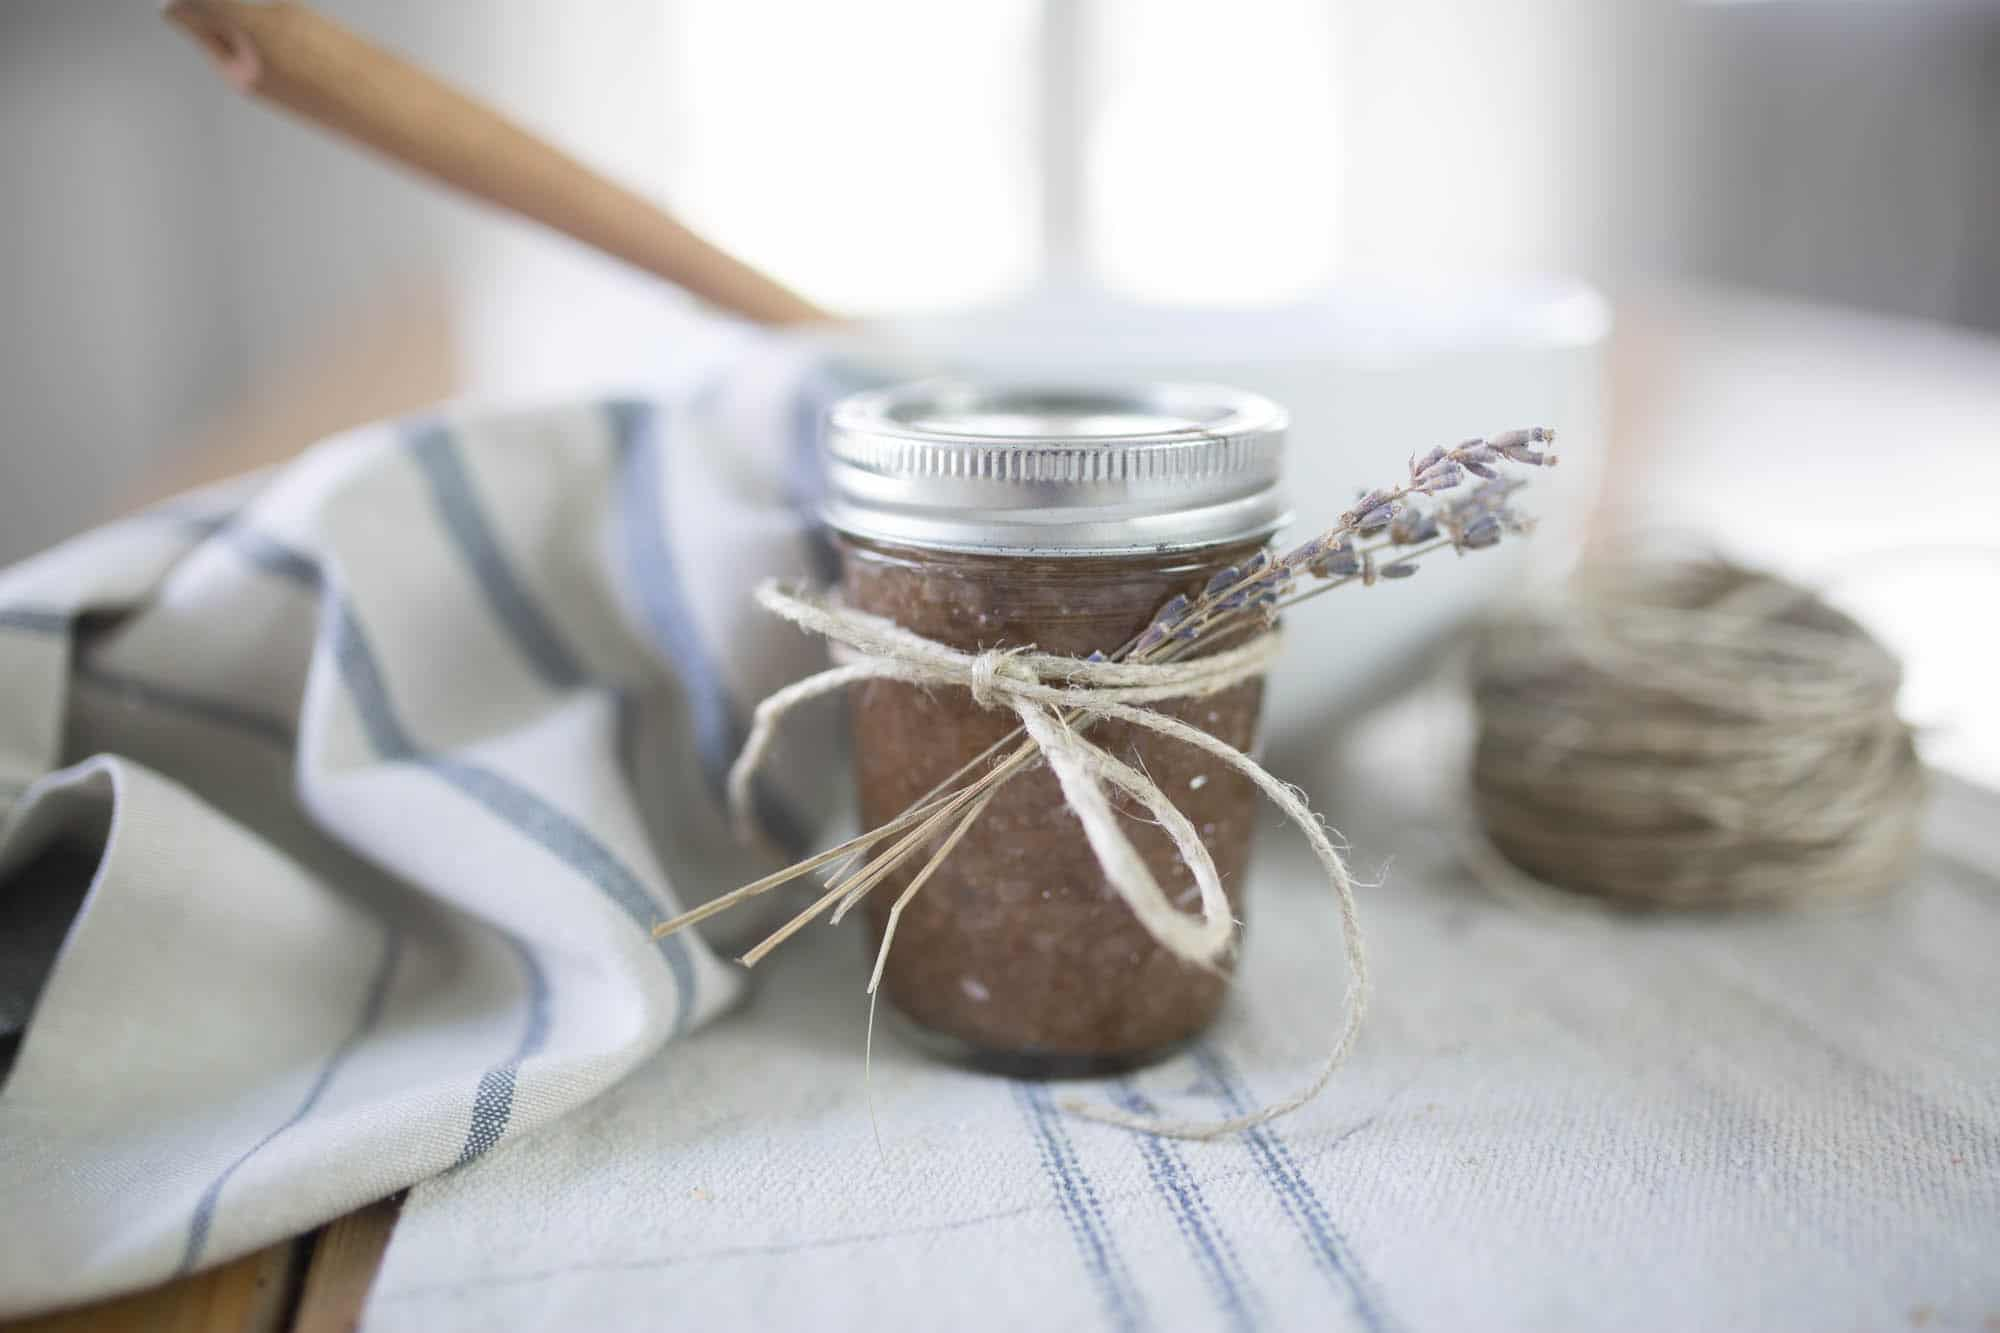 This simple homemade sugar scrub recipe makes the perfect Christmas gift.